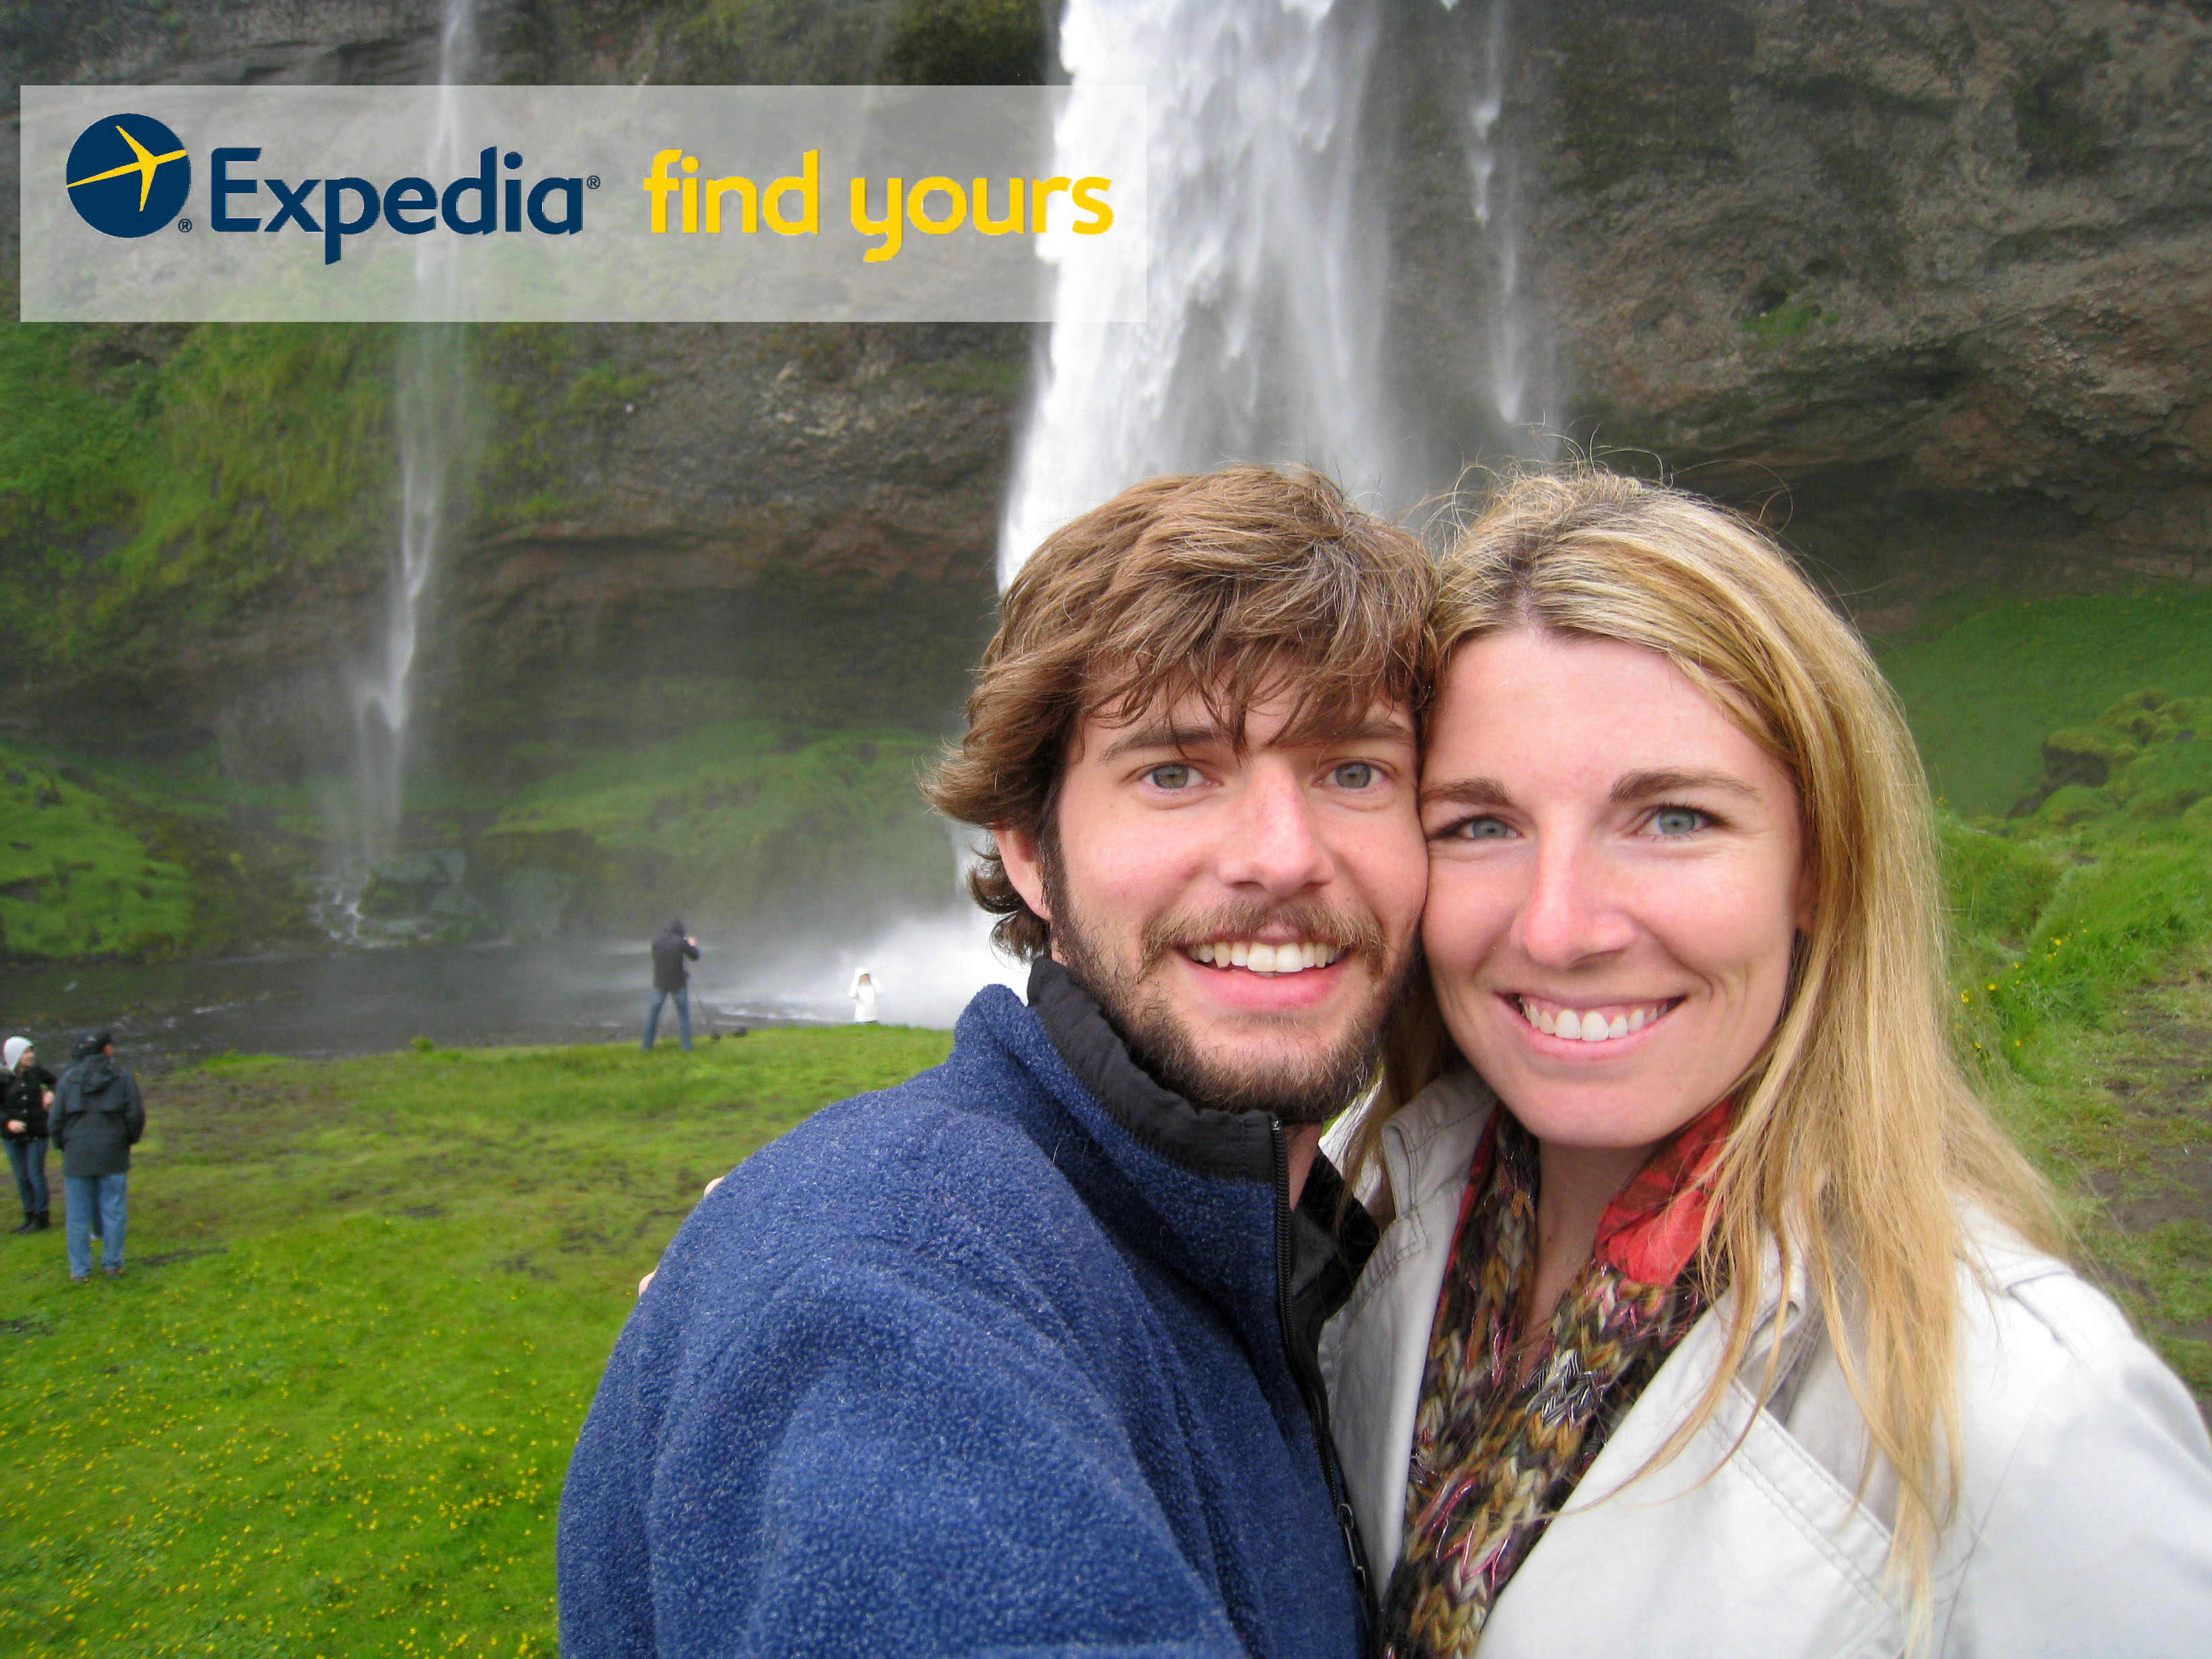 expedia find your love bob and jade with badge2